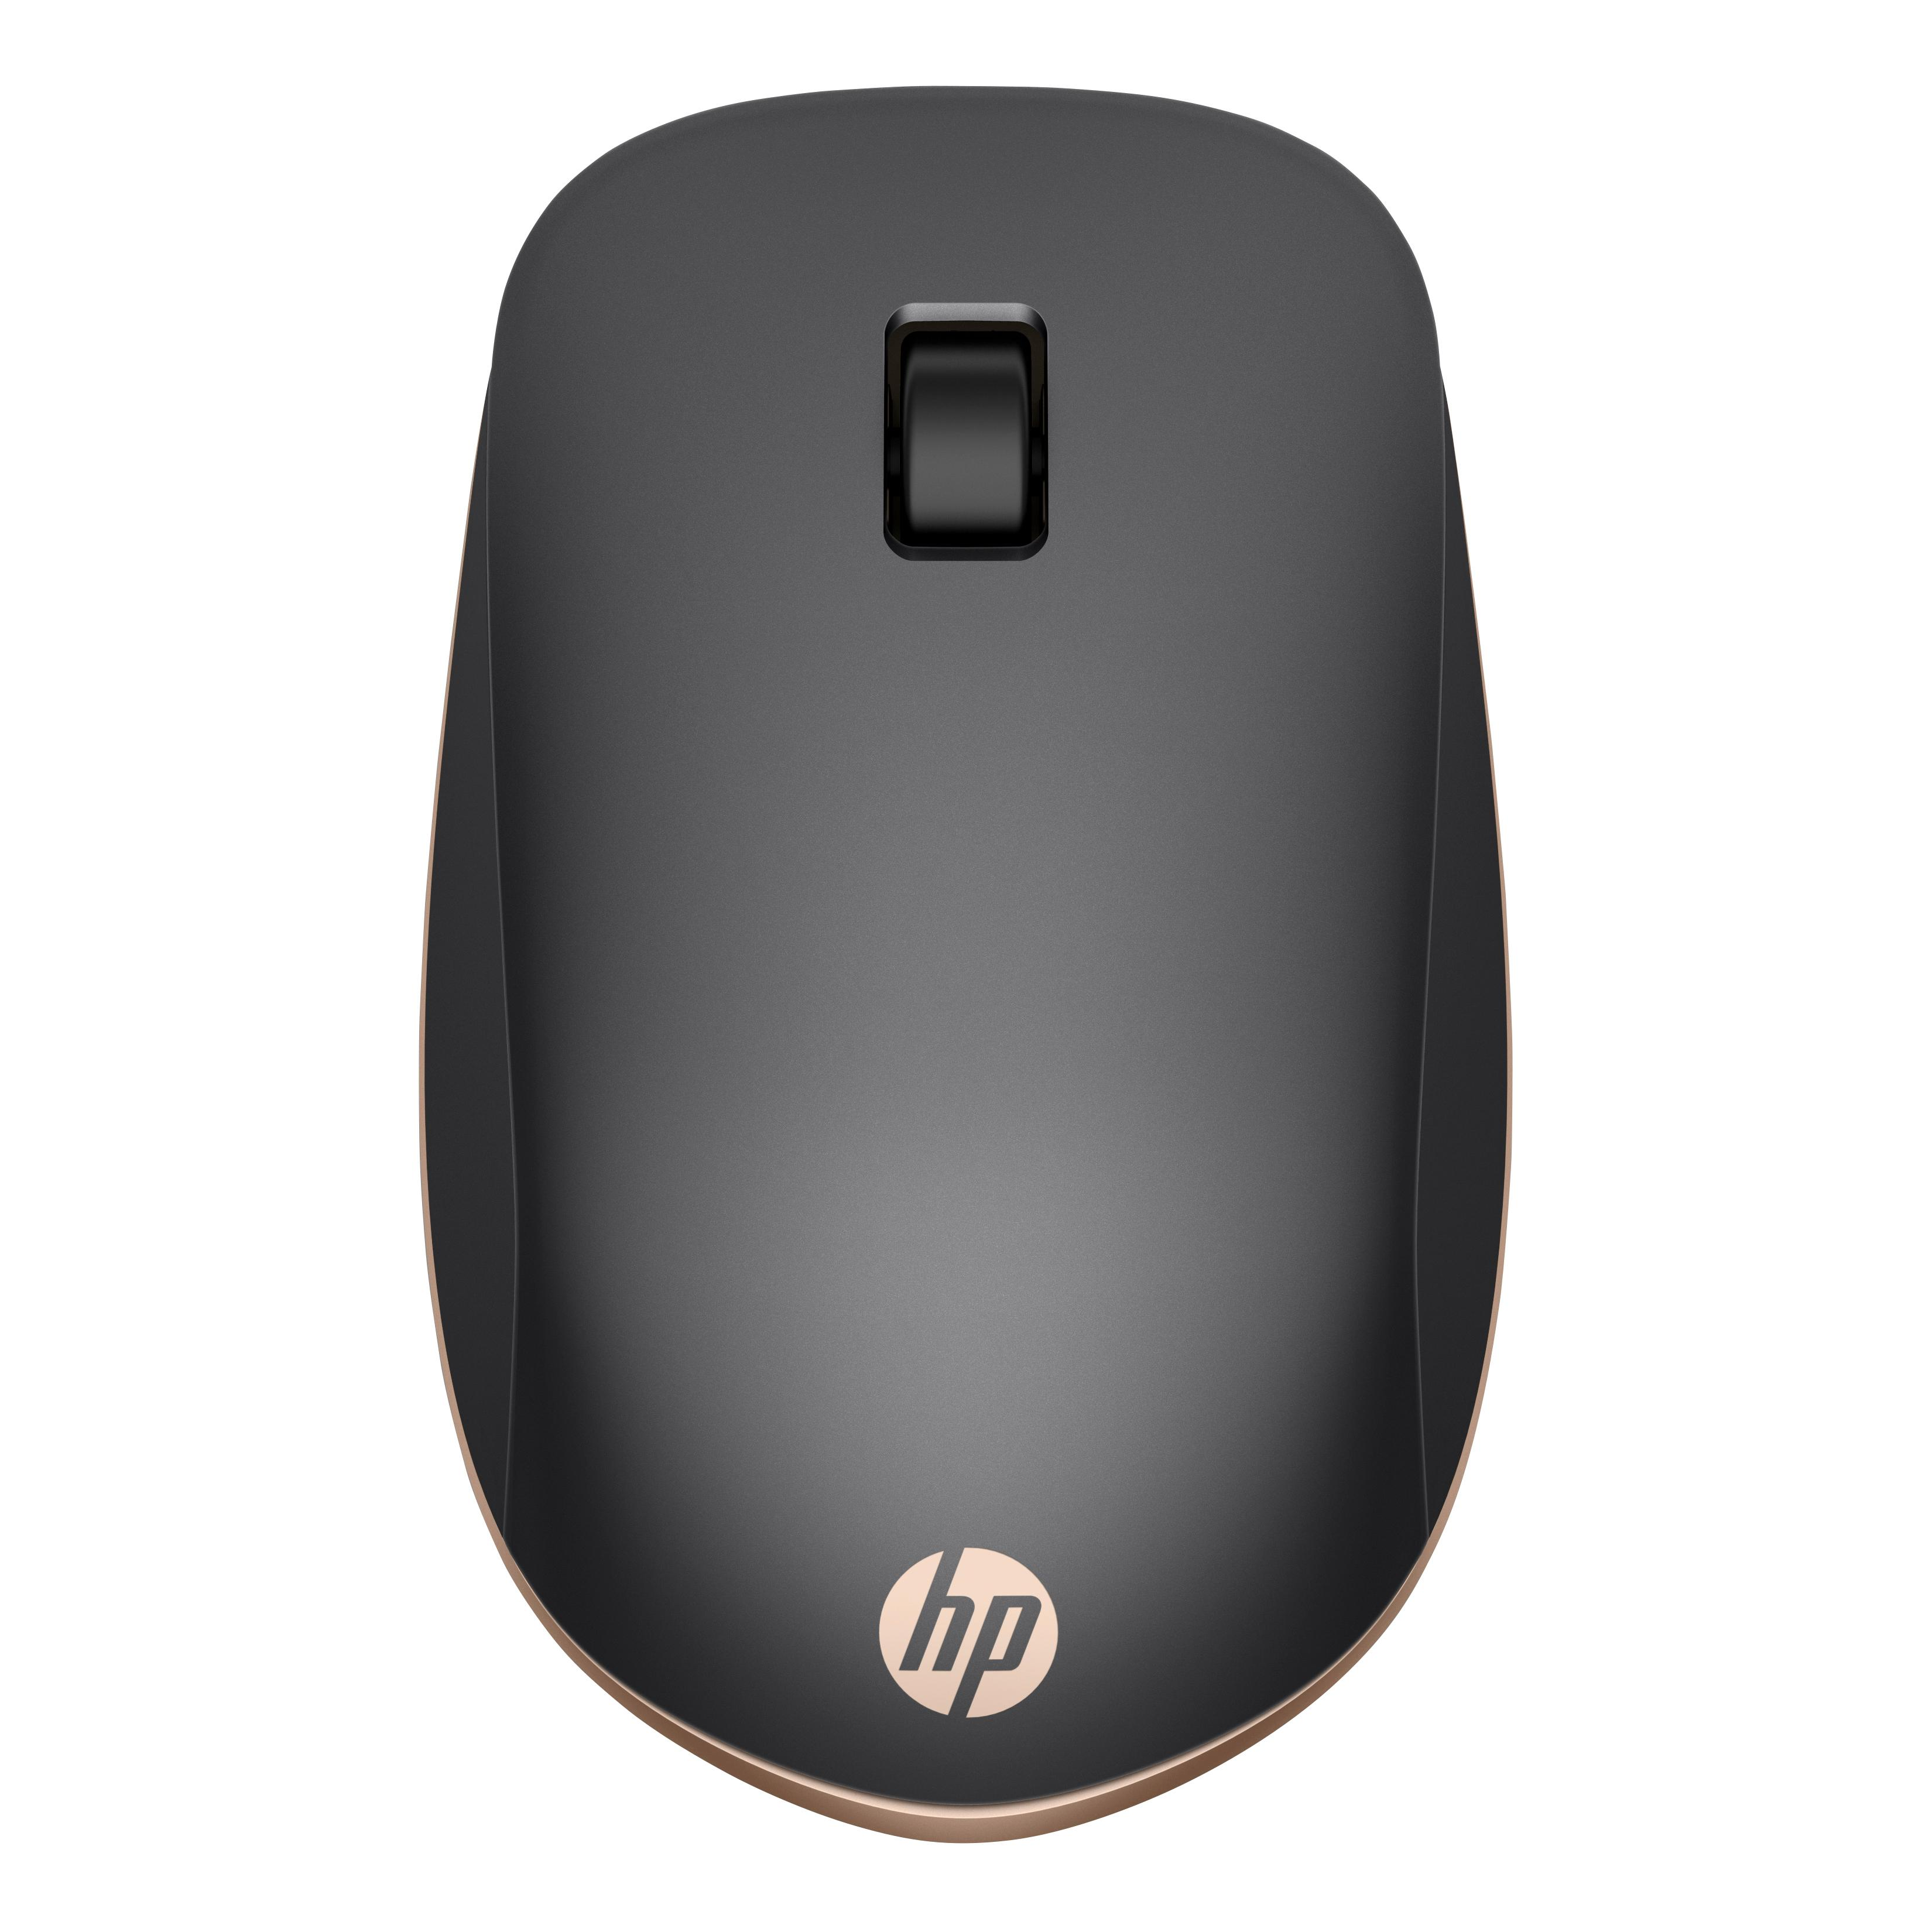 HP Z5000 bluetooth ergonomische computermuis - Zwart